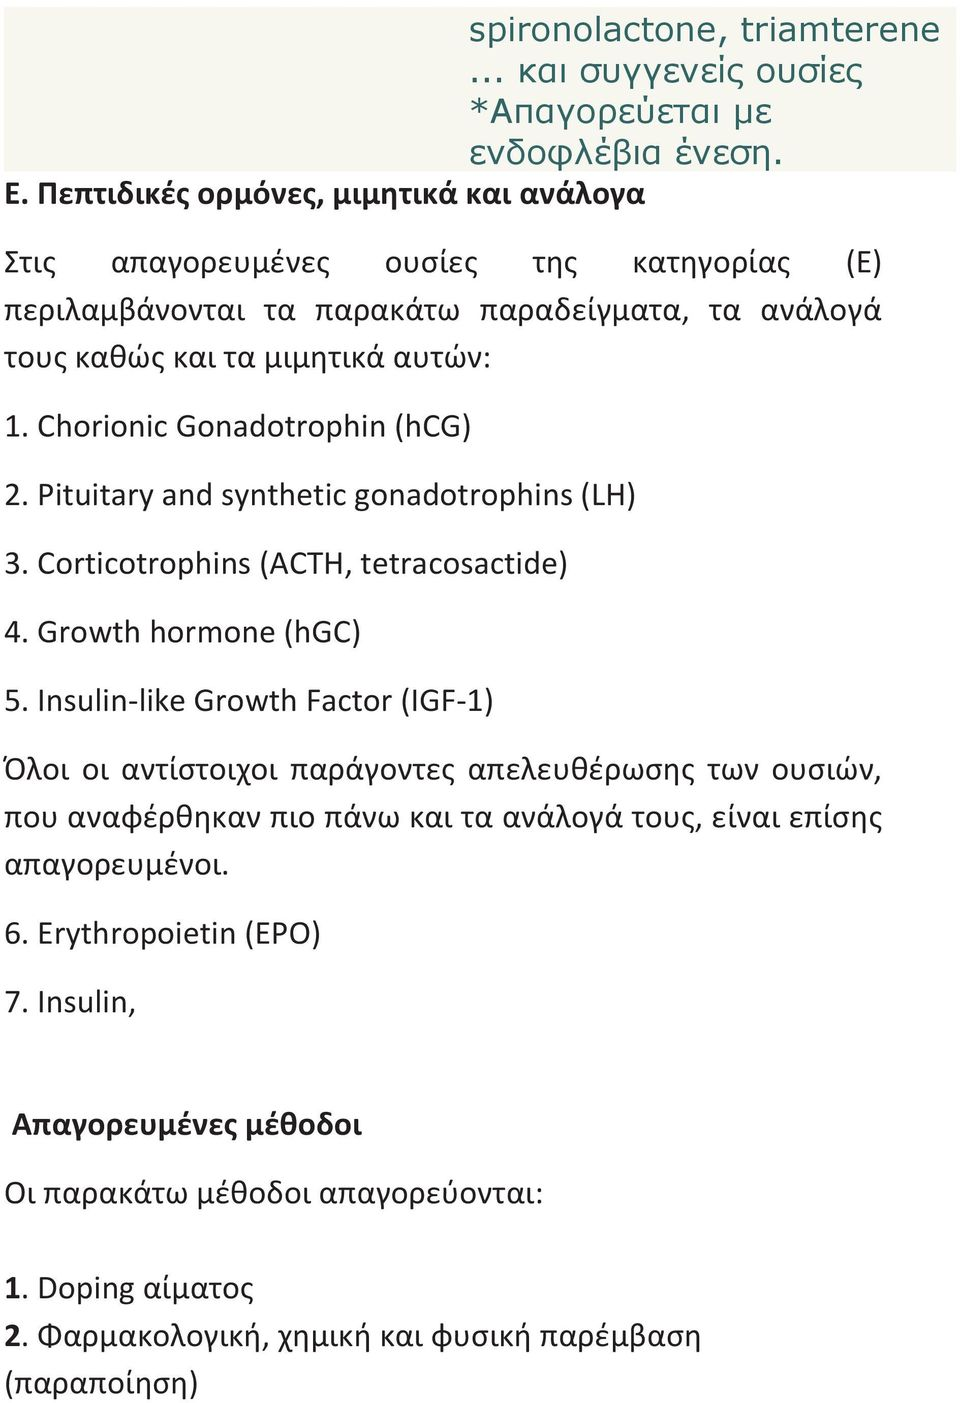 Chorionic Gonadotrophin (hcg) 2. Pituitary and synthetic gonadotrophins (LH) 3. Corticotrophins (ACTH, tetracosactide) 4. Growth hormone (hgc) 5.